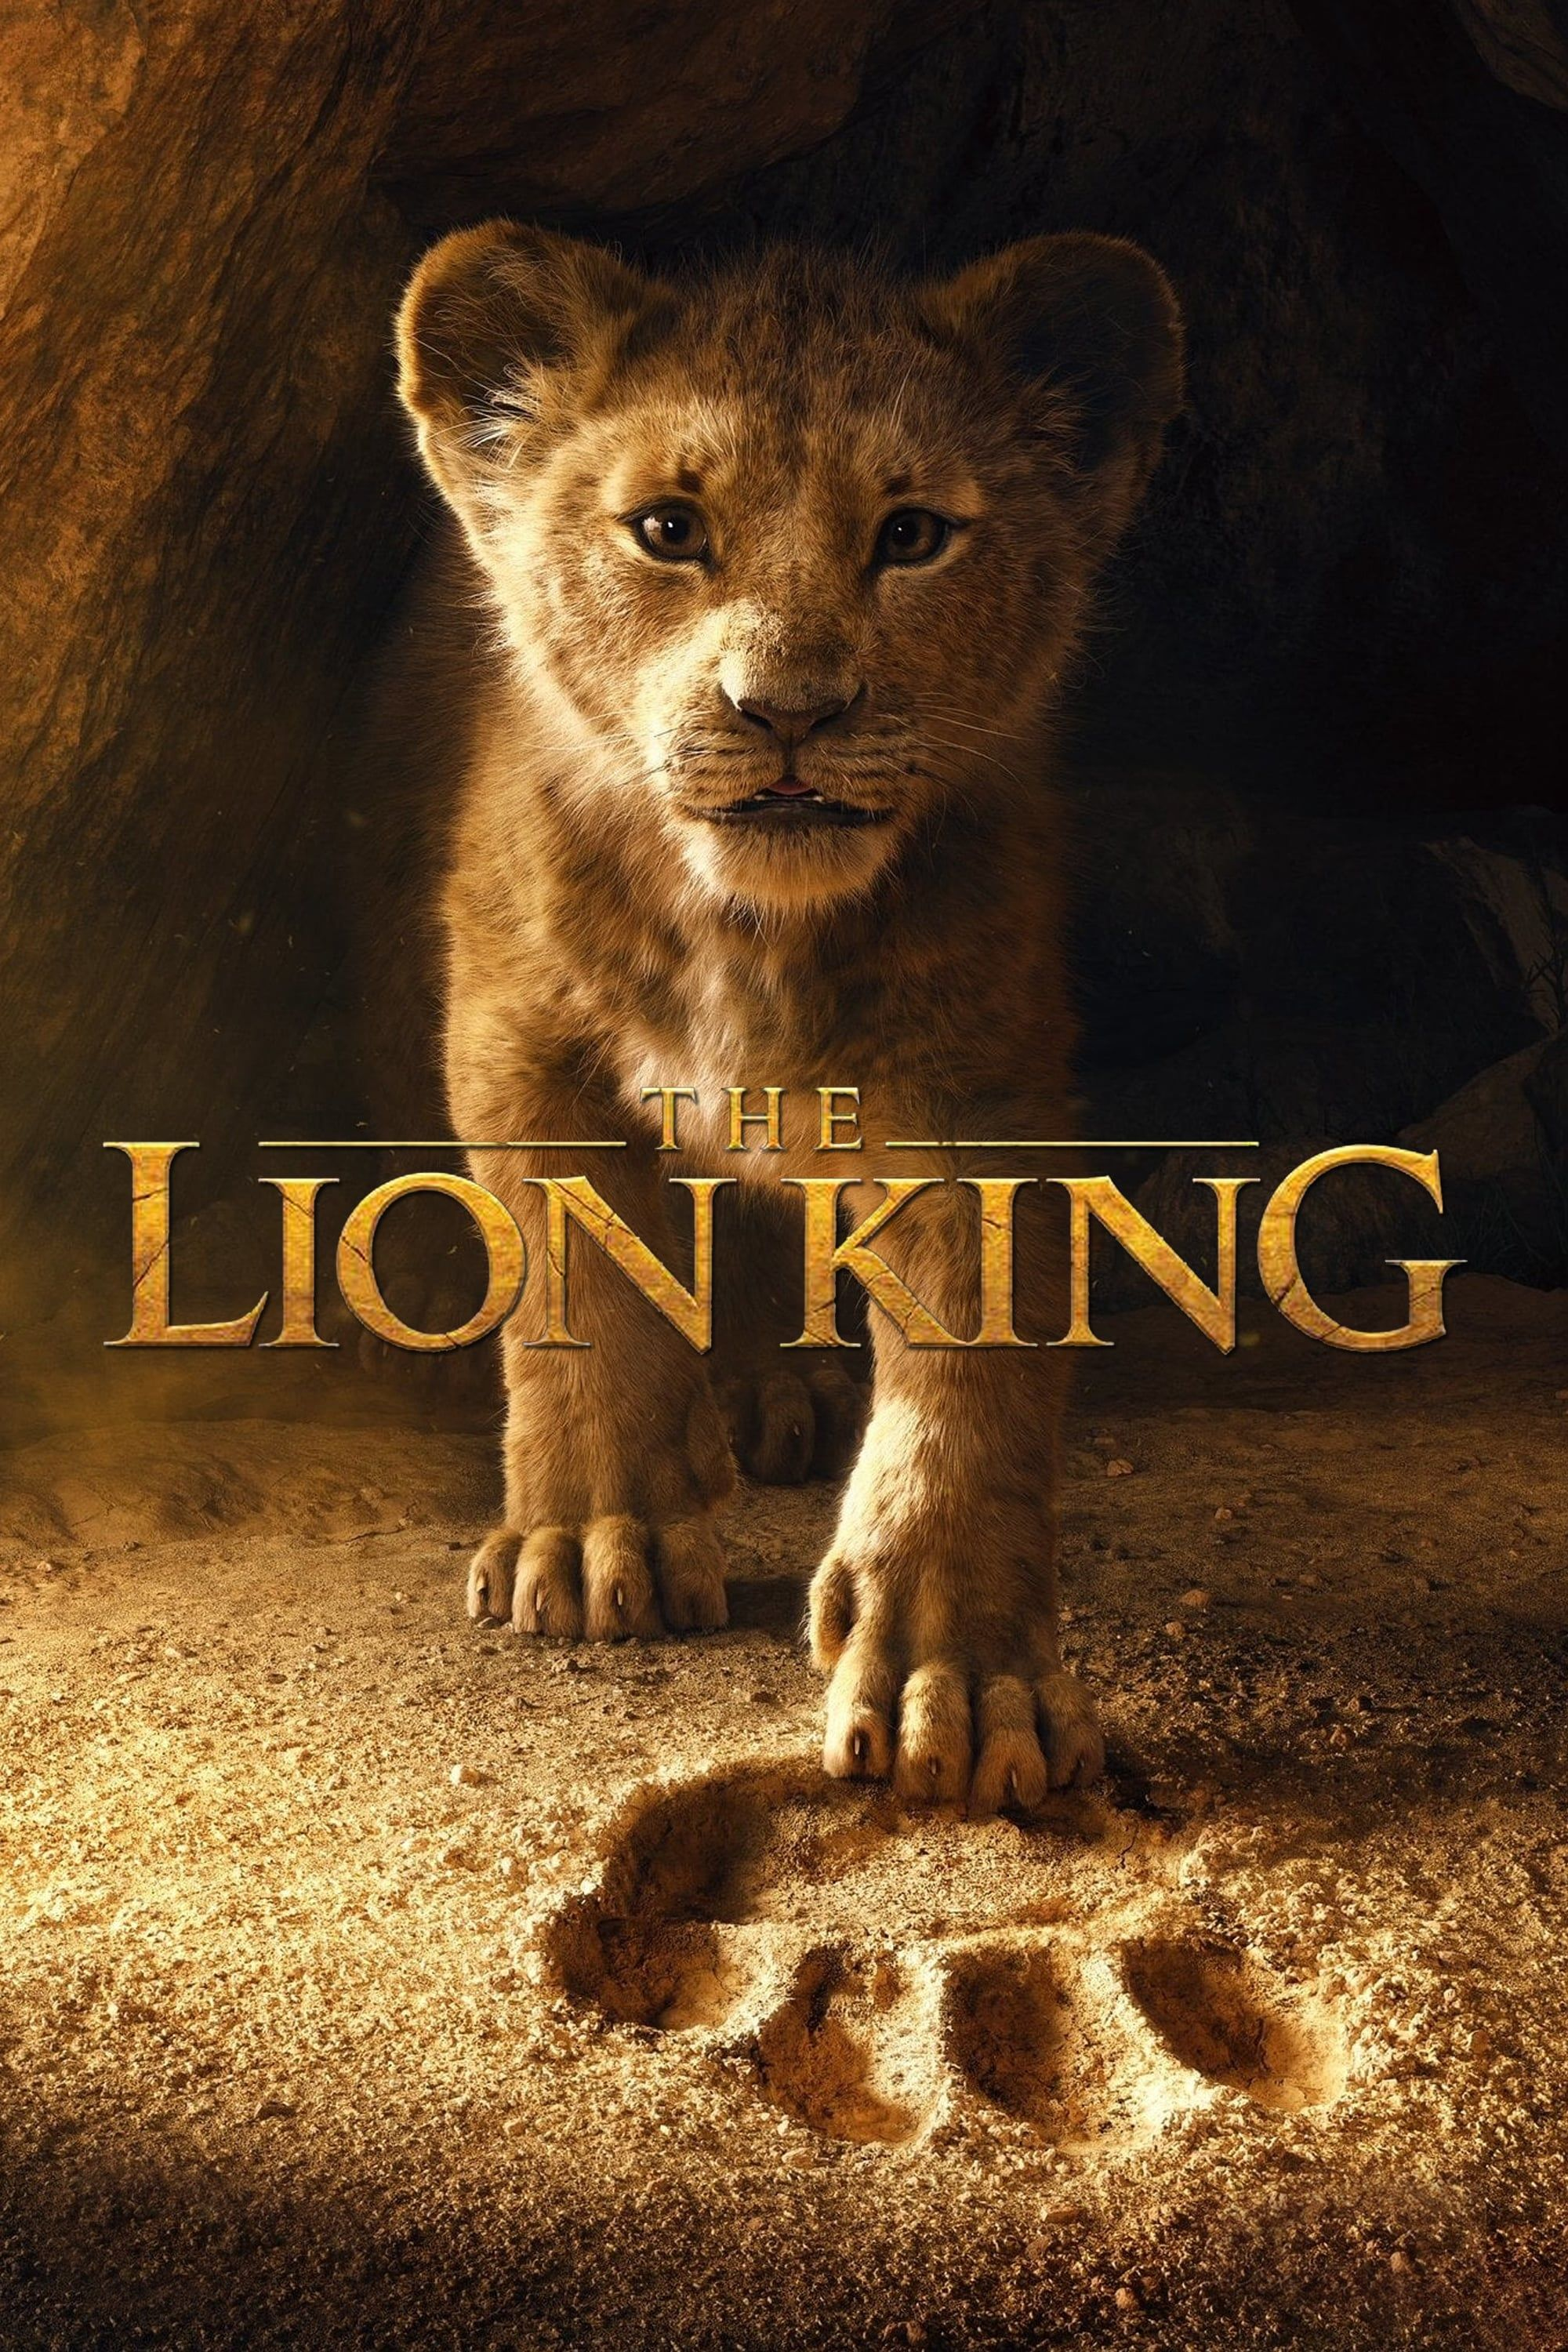 The Lion King Streaming Italiano Guarda The Lion King Guarda